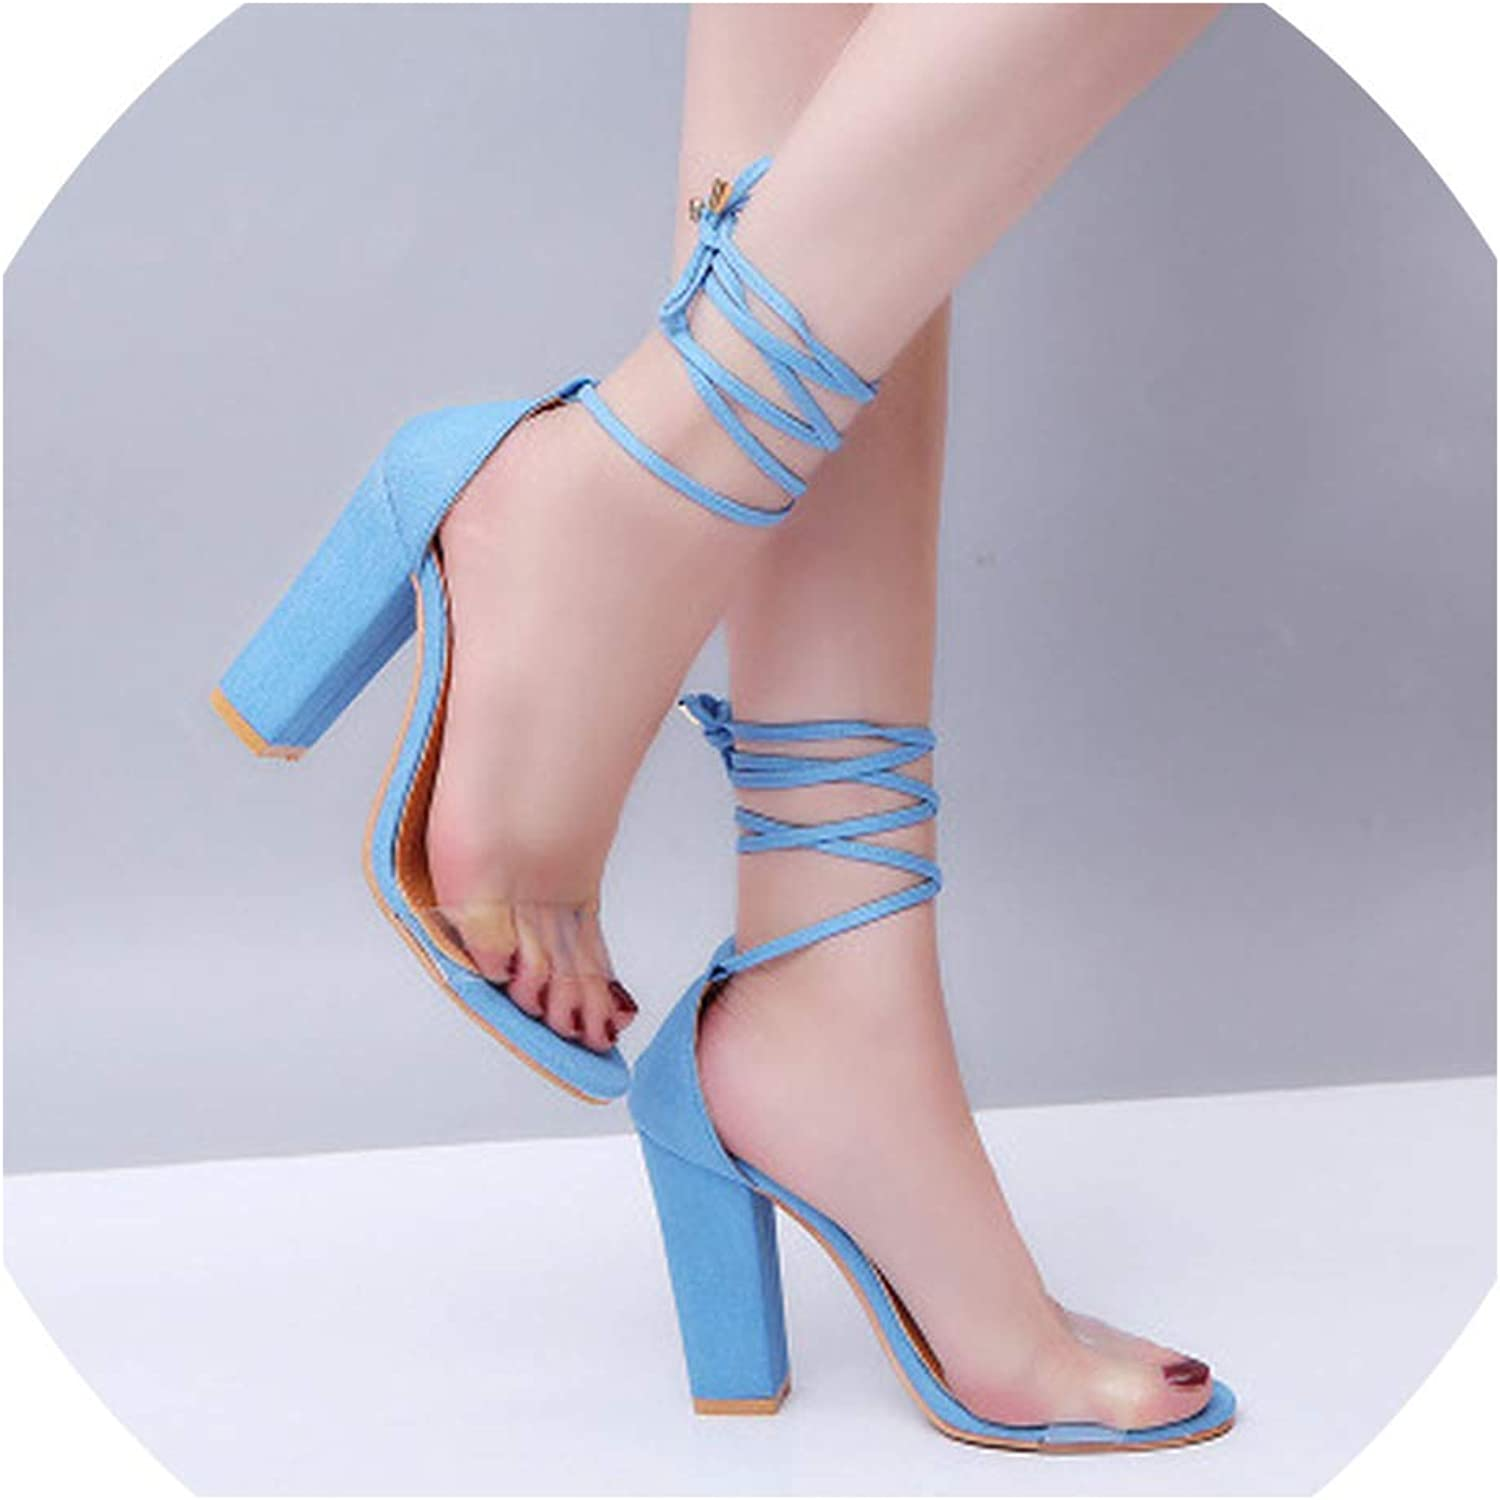 Boom-moon Rope Retro Sexy Open Toe Fish Mouth Sandals high Heel Women's shoes